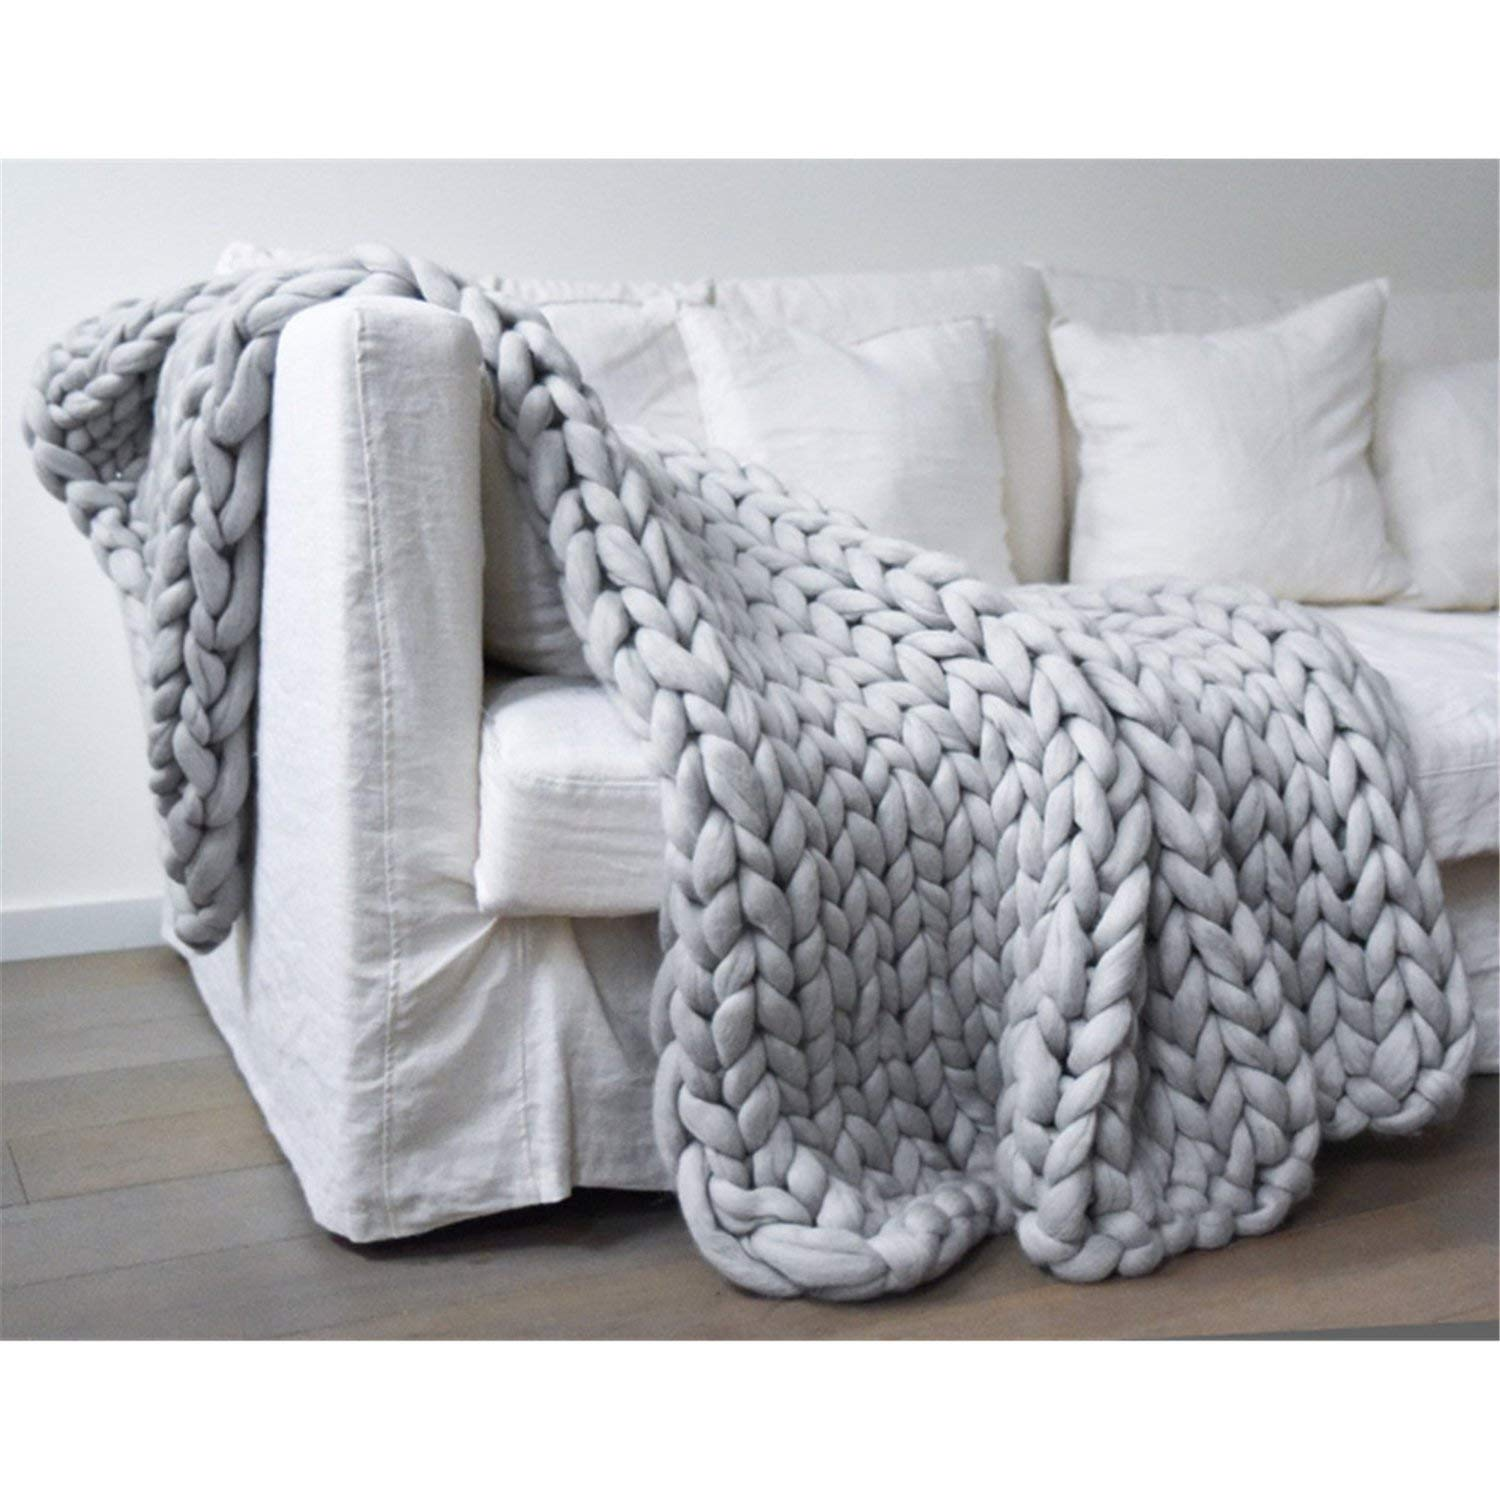 clootess Bulky Chunky Yarn Big Roving Wool for Hand Made Knitted DIY Sofa Bed Throw Blankets Light Grey 8 lbs = 3.6 kg by clootess (Image #5)